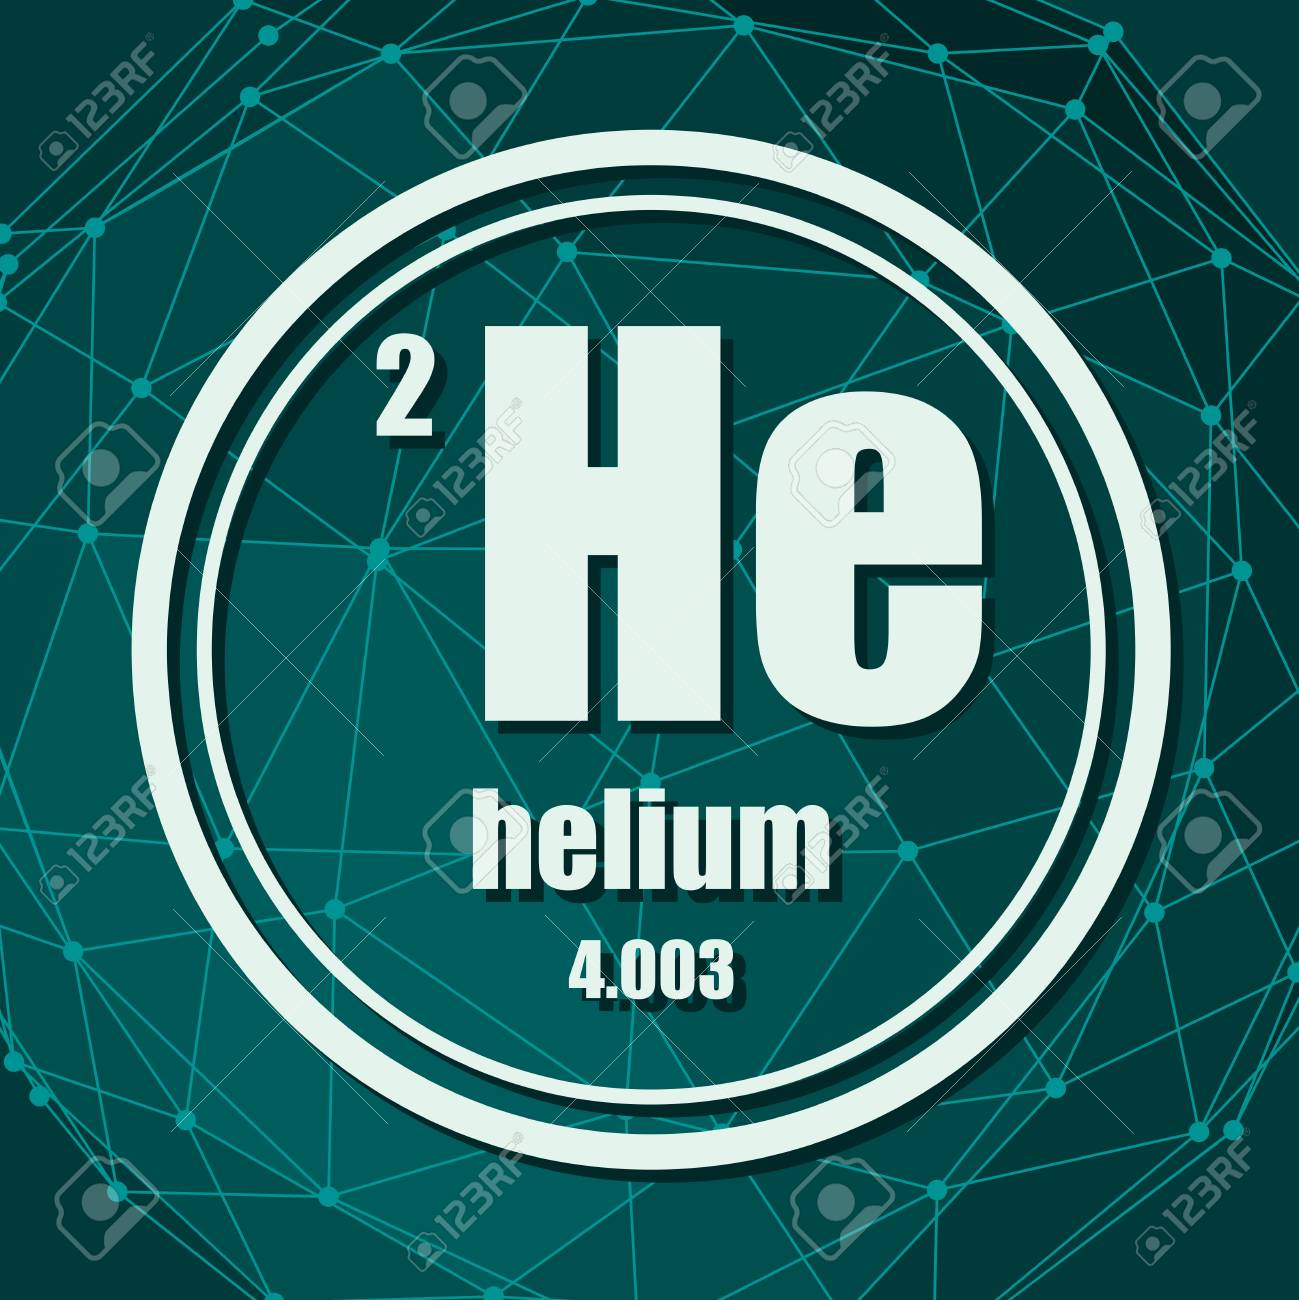 What is the atomic mass of helium